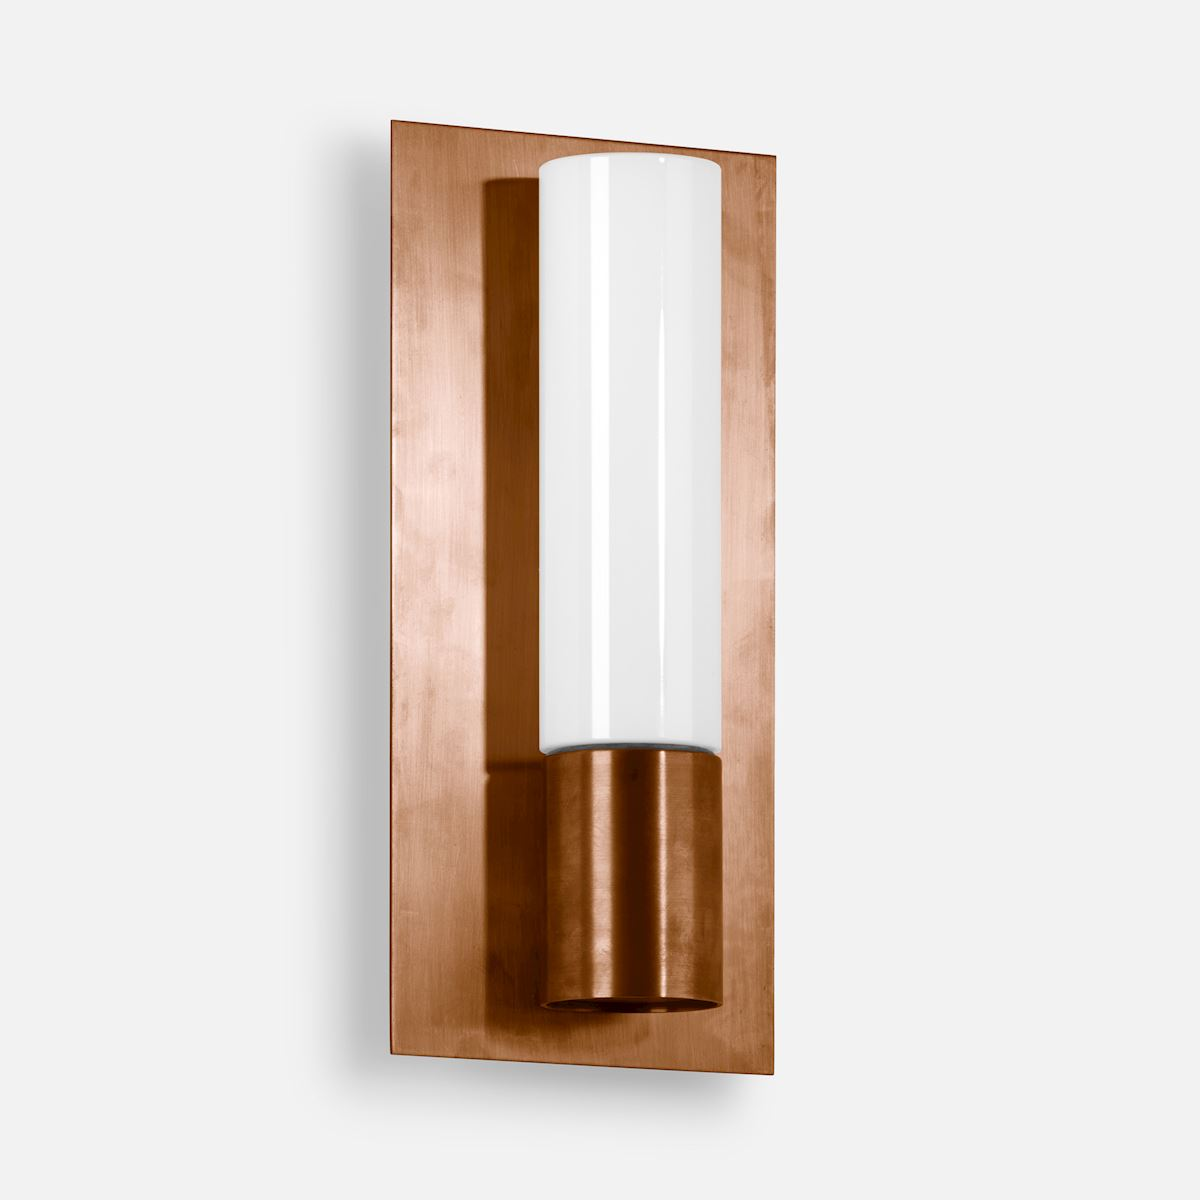 Cast bronze, copper and brass wall luminaire